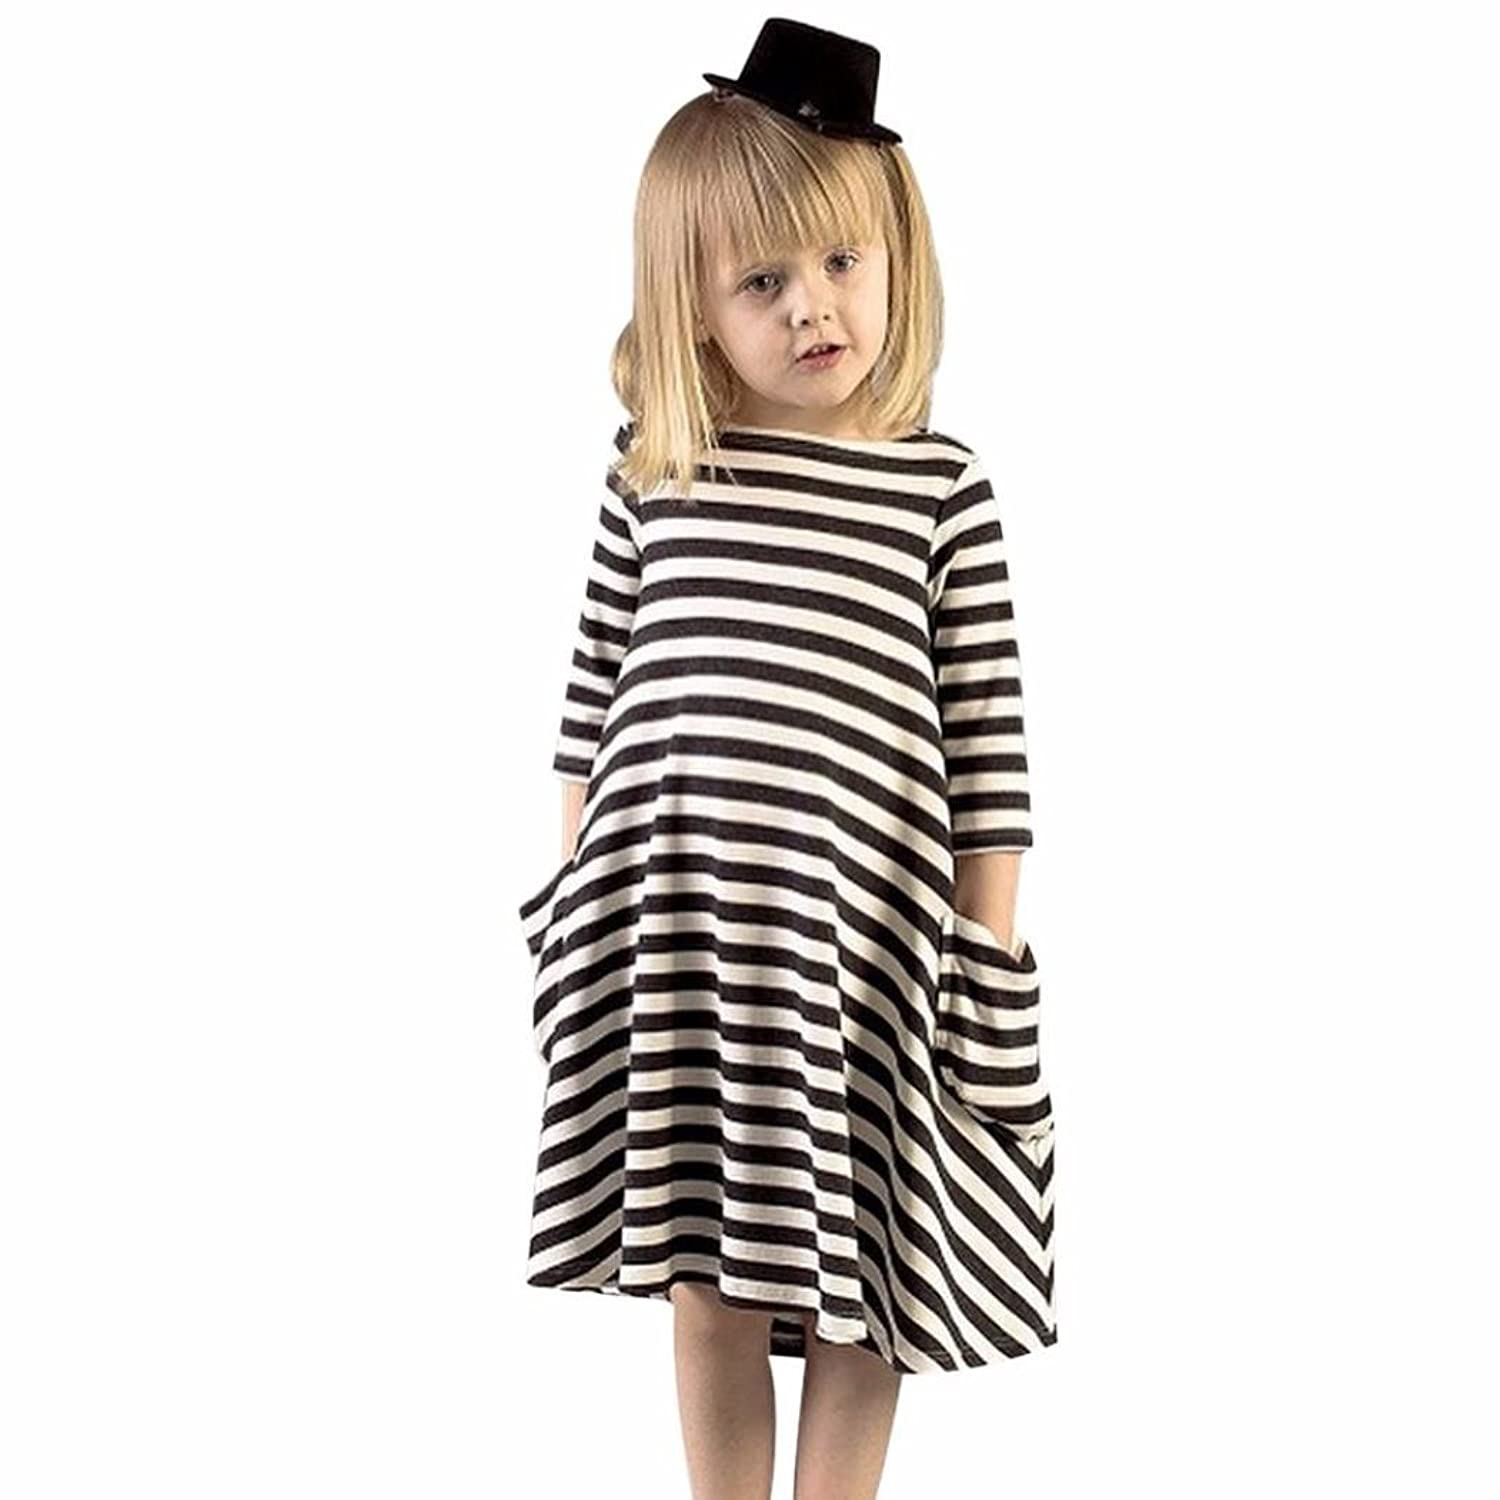 ChainSee Girls' Casual Family Clothes Black White Striped Three Quarter Sleeve Cotton Dress